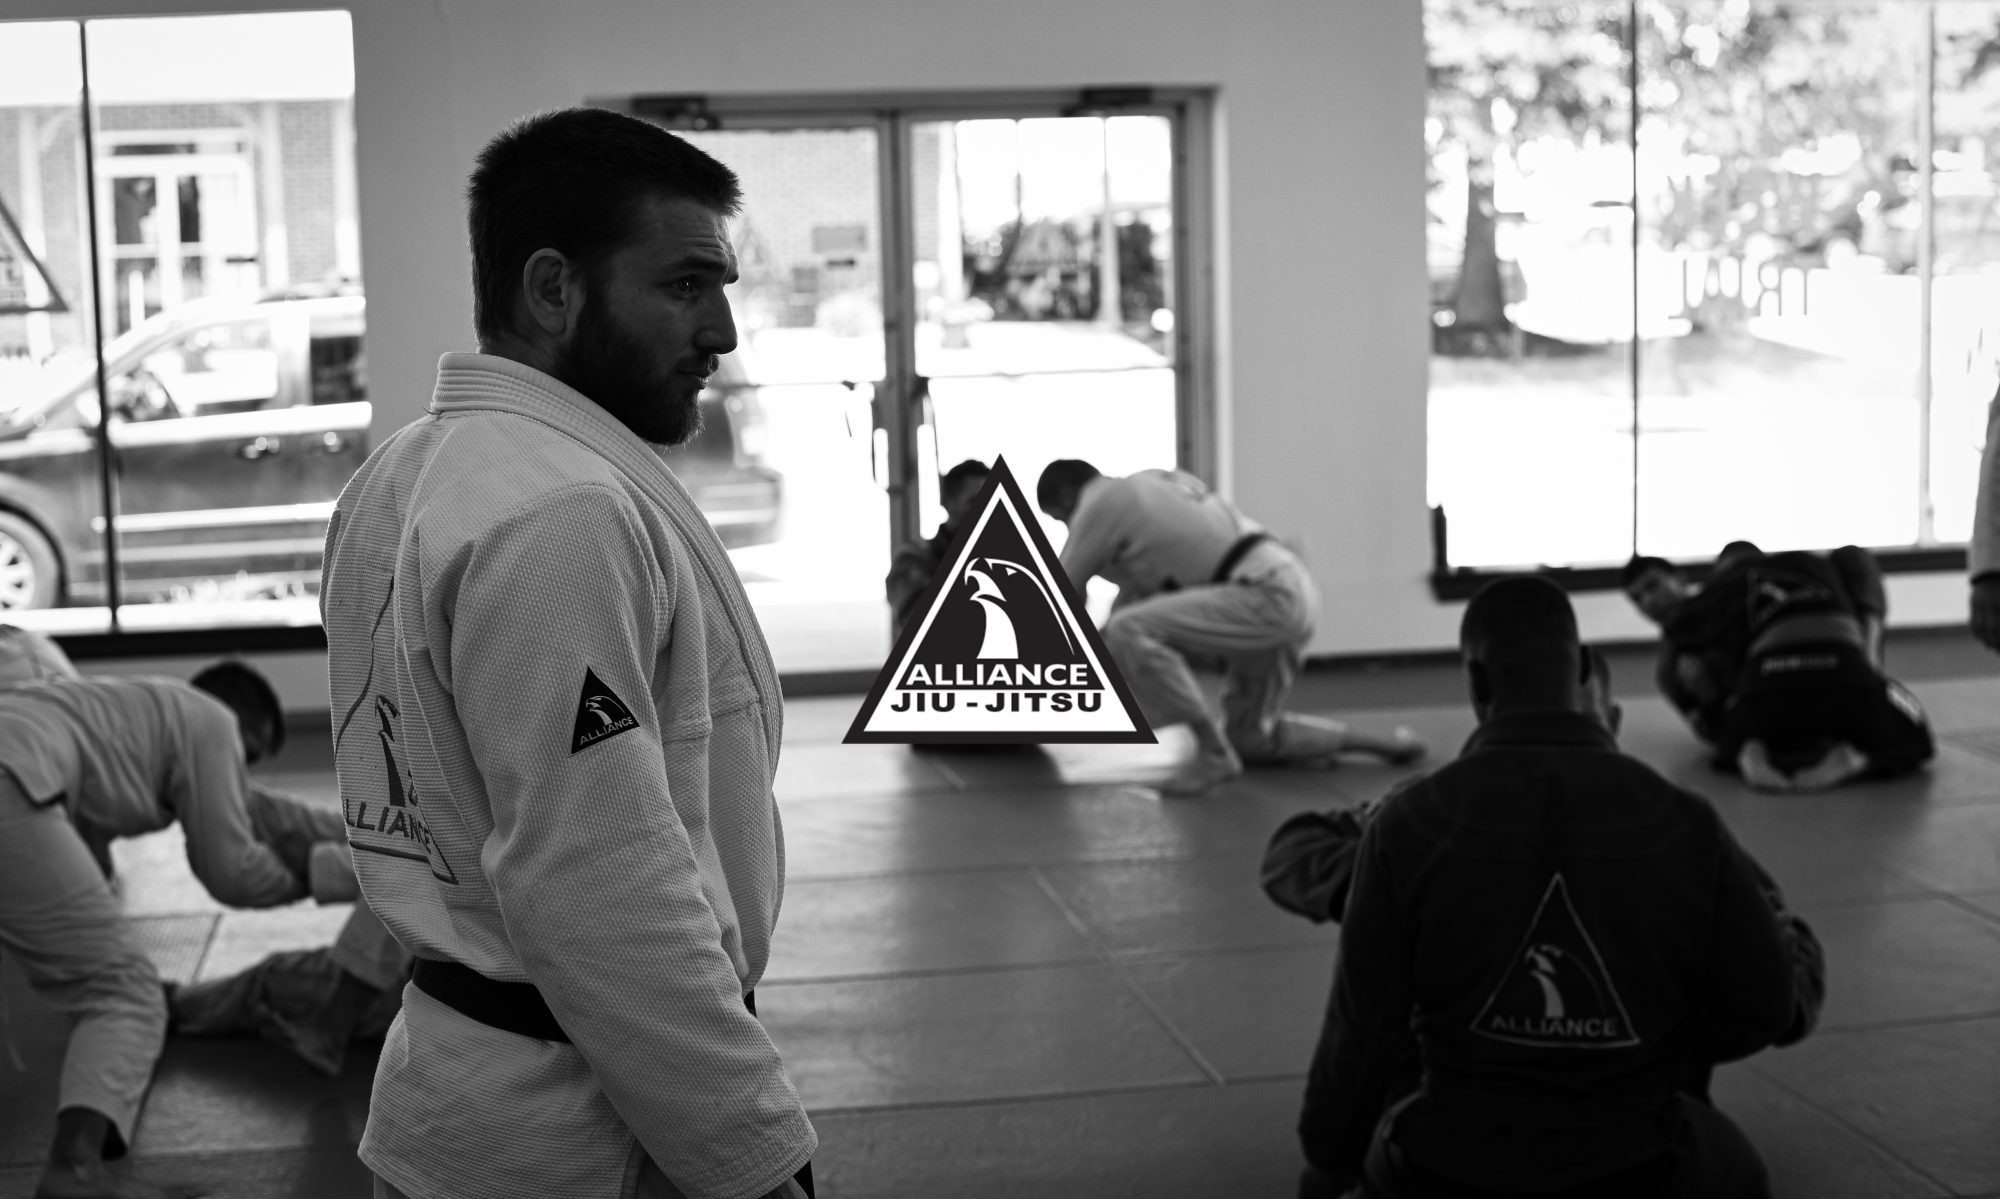 Alliance Jiu Jitsu PA